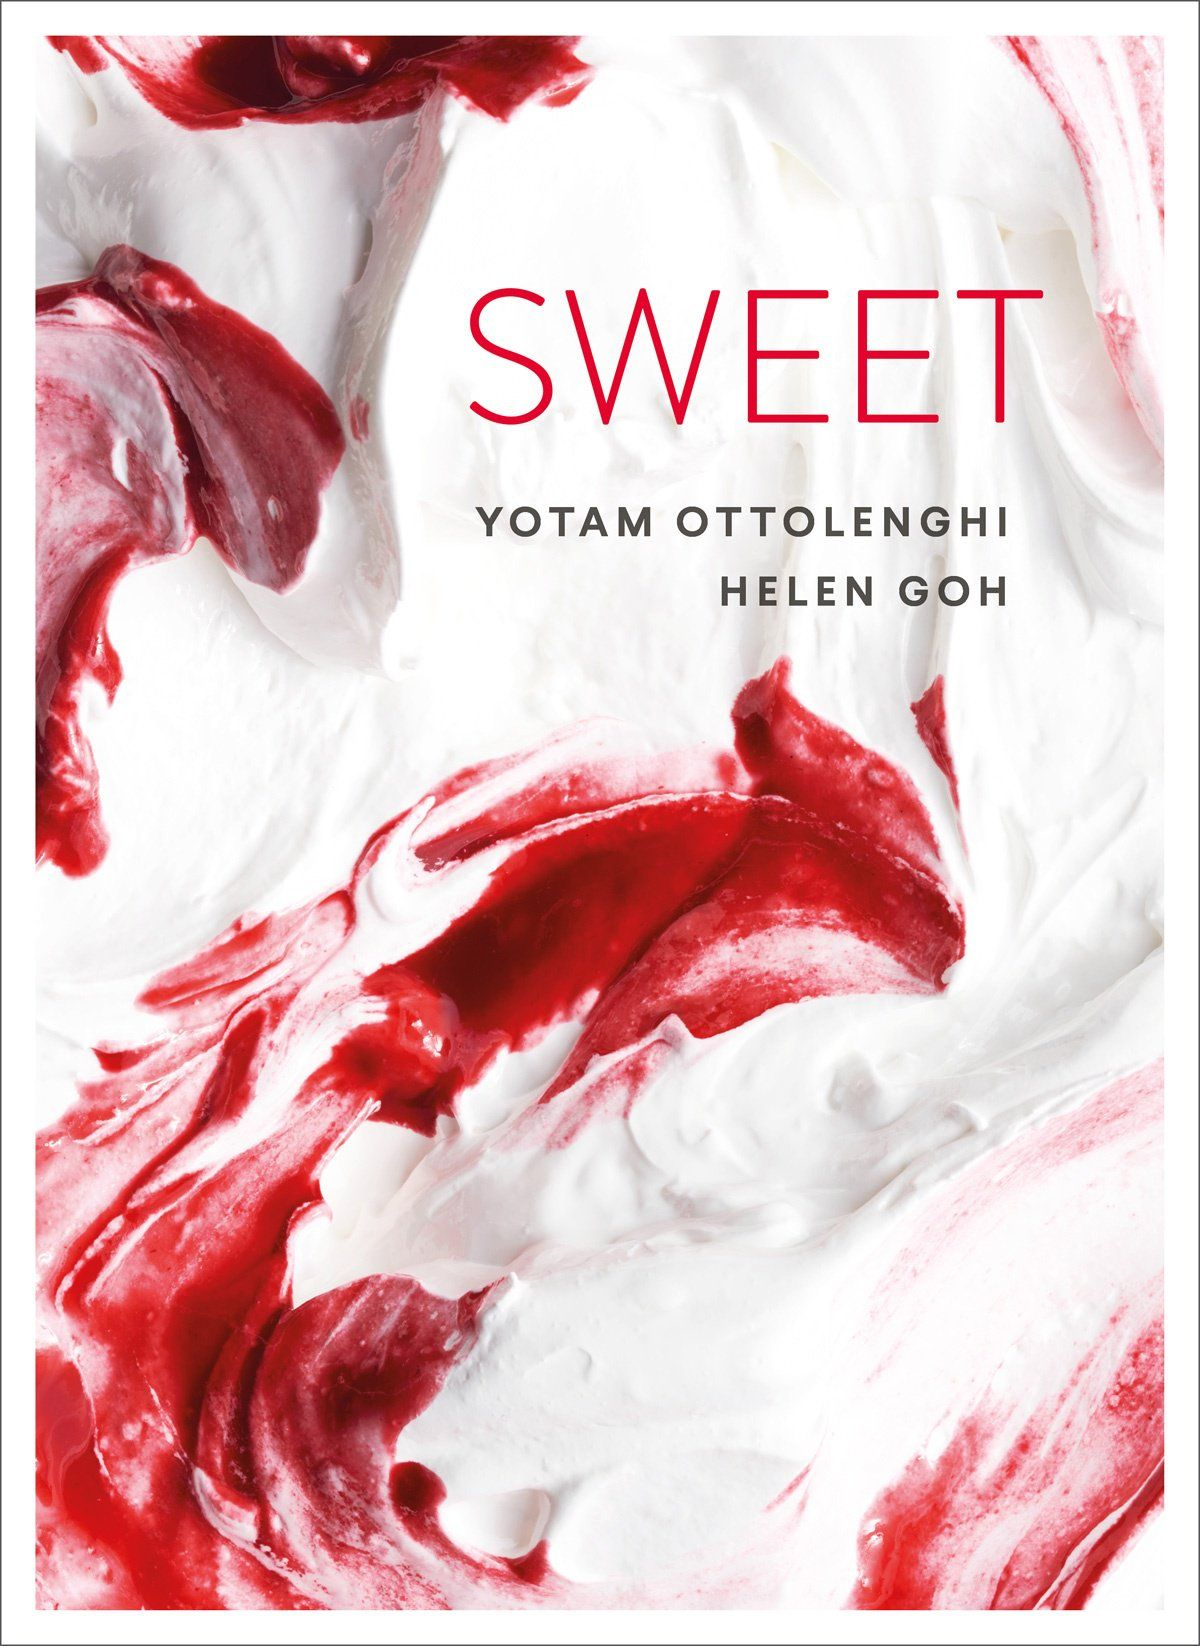 Sweet by Yotam Ottolenghi and Helen Goh: Ever since I got my hands on a copy of this book, I haven't been able to stop myself leafing through its pages, calling aloud to anyone in the room (and sometimes, I'm afraid, to myself) about its utter lusciousness. The flavours that waft through this book make me salivate as I read, and I'm afraid I found it very hard to settle upon just one recipe for you. But in the end it had to be this. You can see why, can't you?